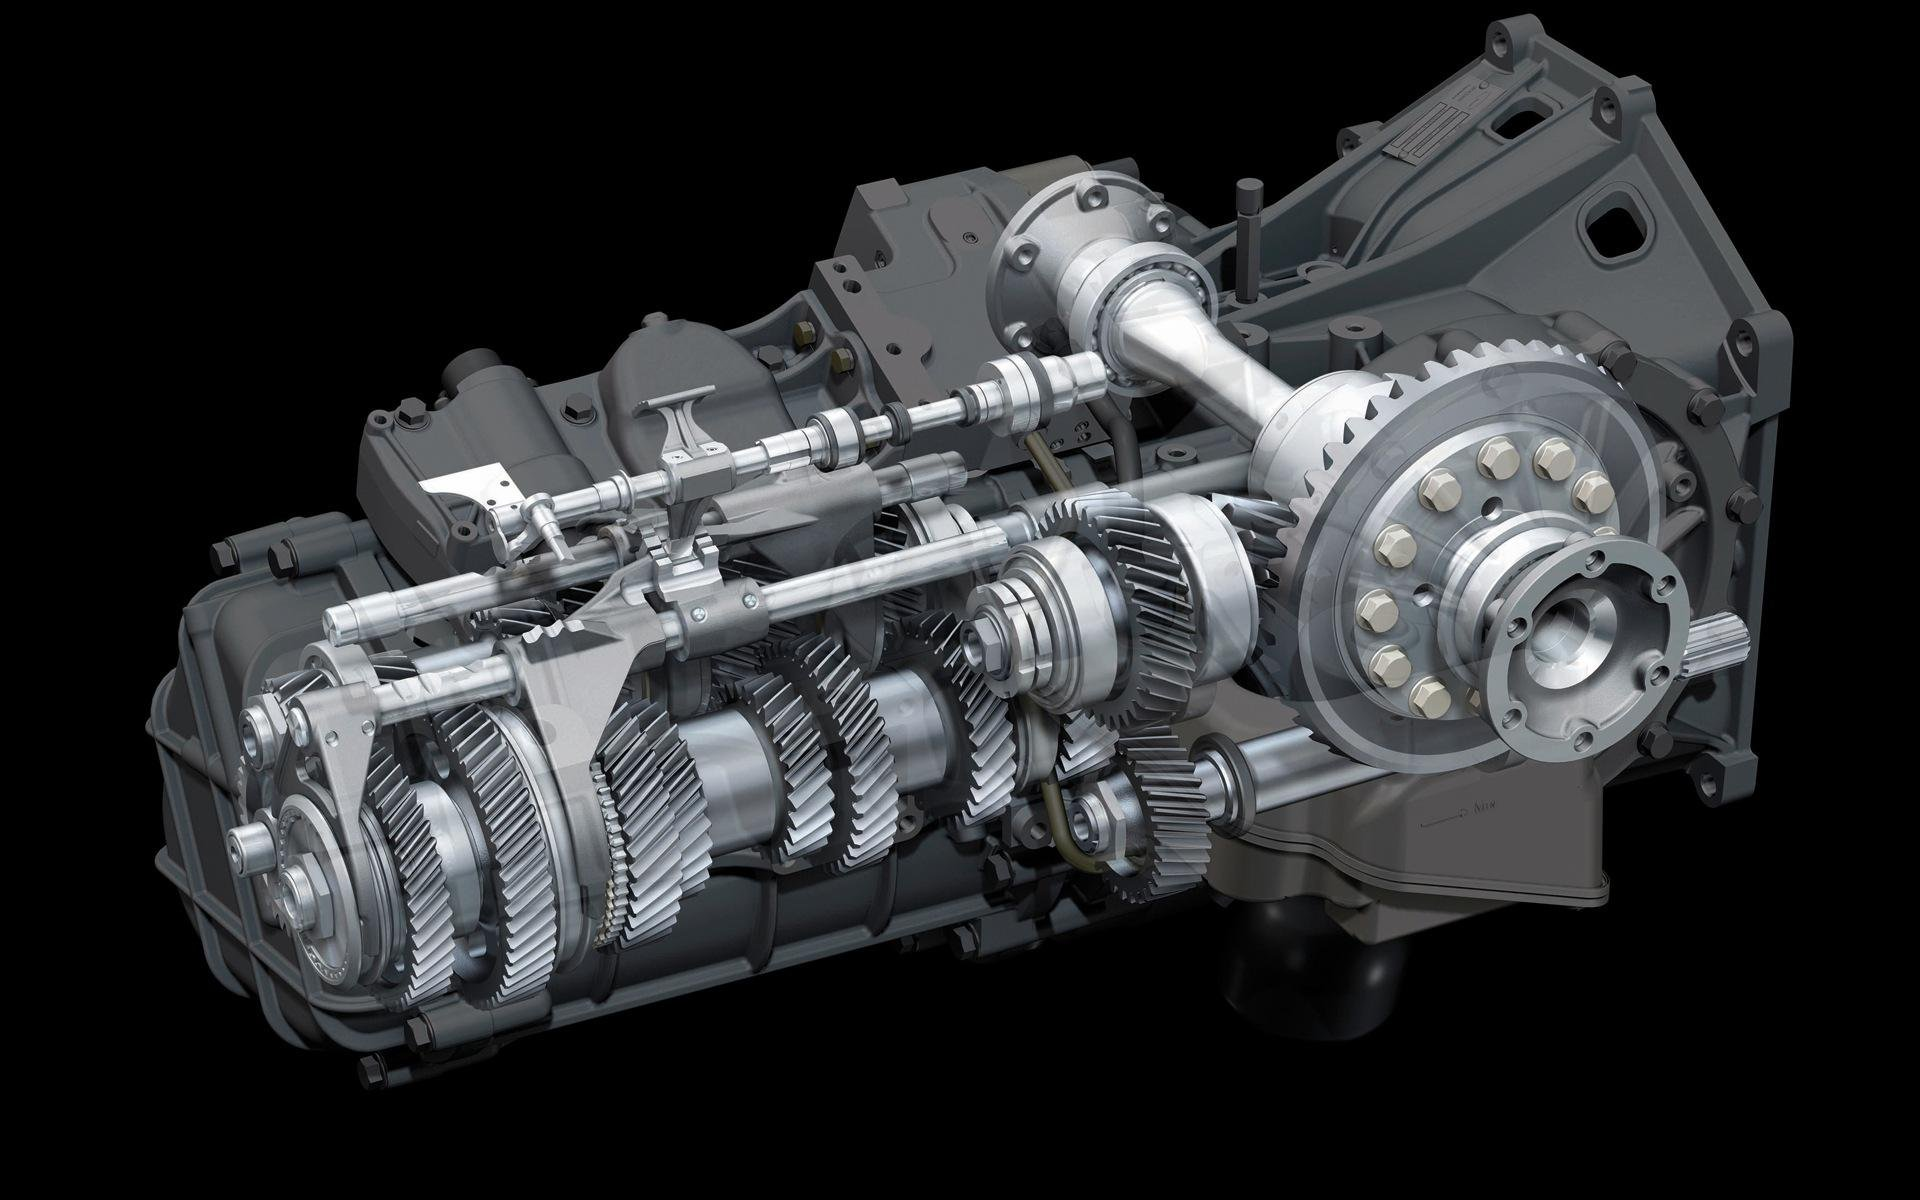 Mechanical engineering wallpapers for pc wallpapersafari - Hd wallpaper mechanical engineering ...